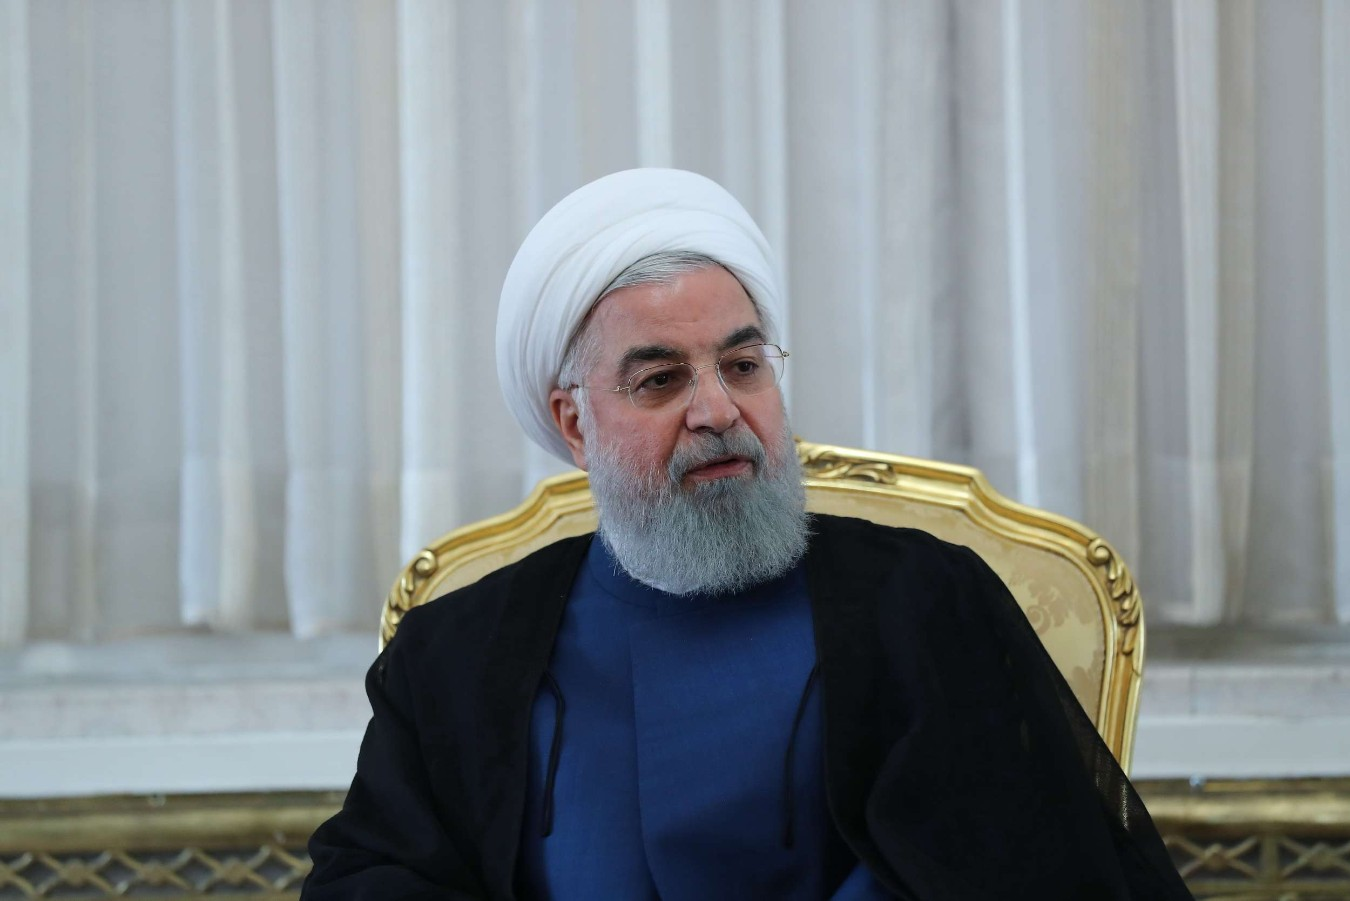 A handout picture provided by the Iranian presidency shows the Iranian president Hassan Rohani. (AFP)